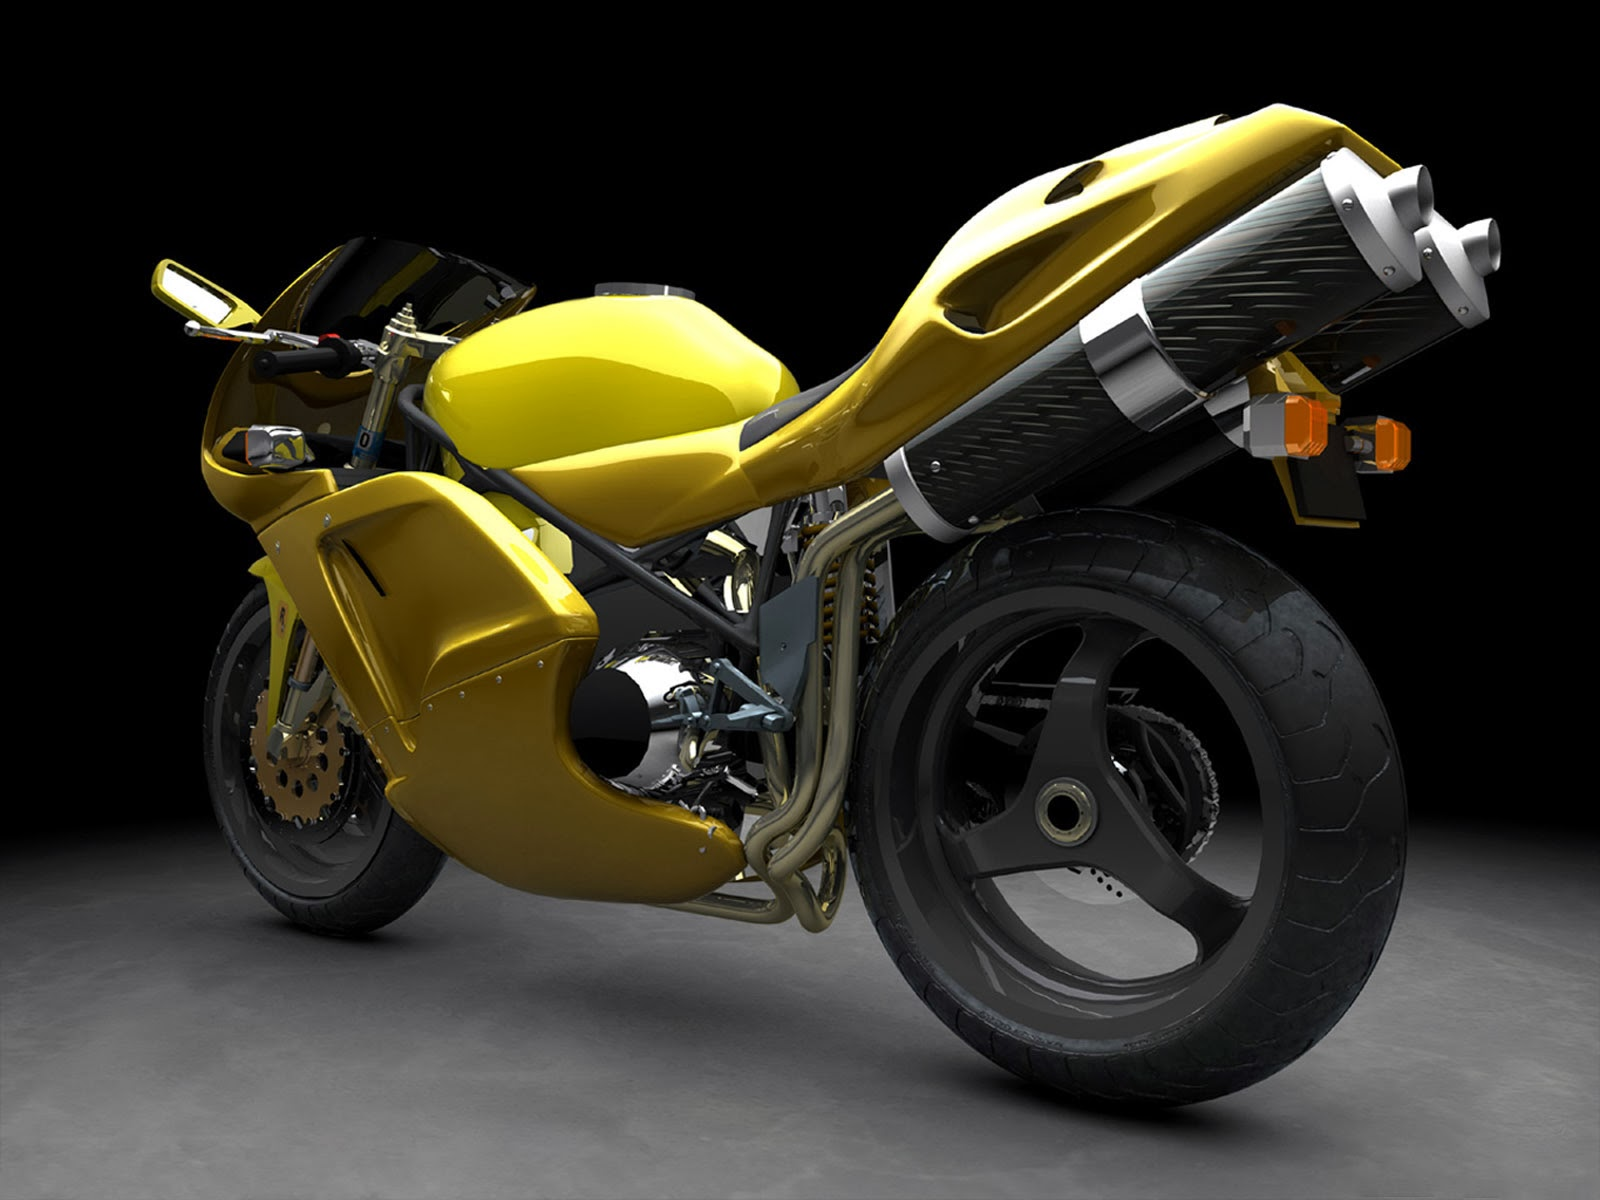 HD Bike wallpapers 1080p - Mobile wallpapers